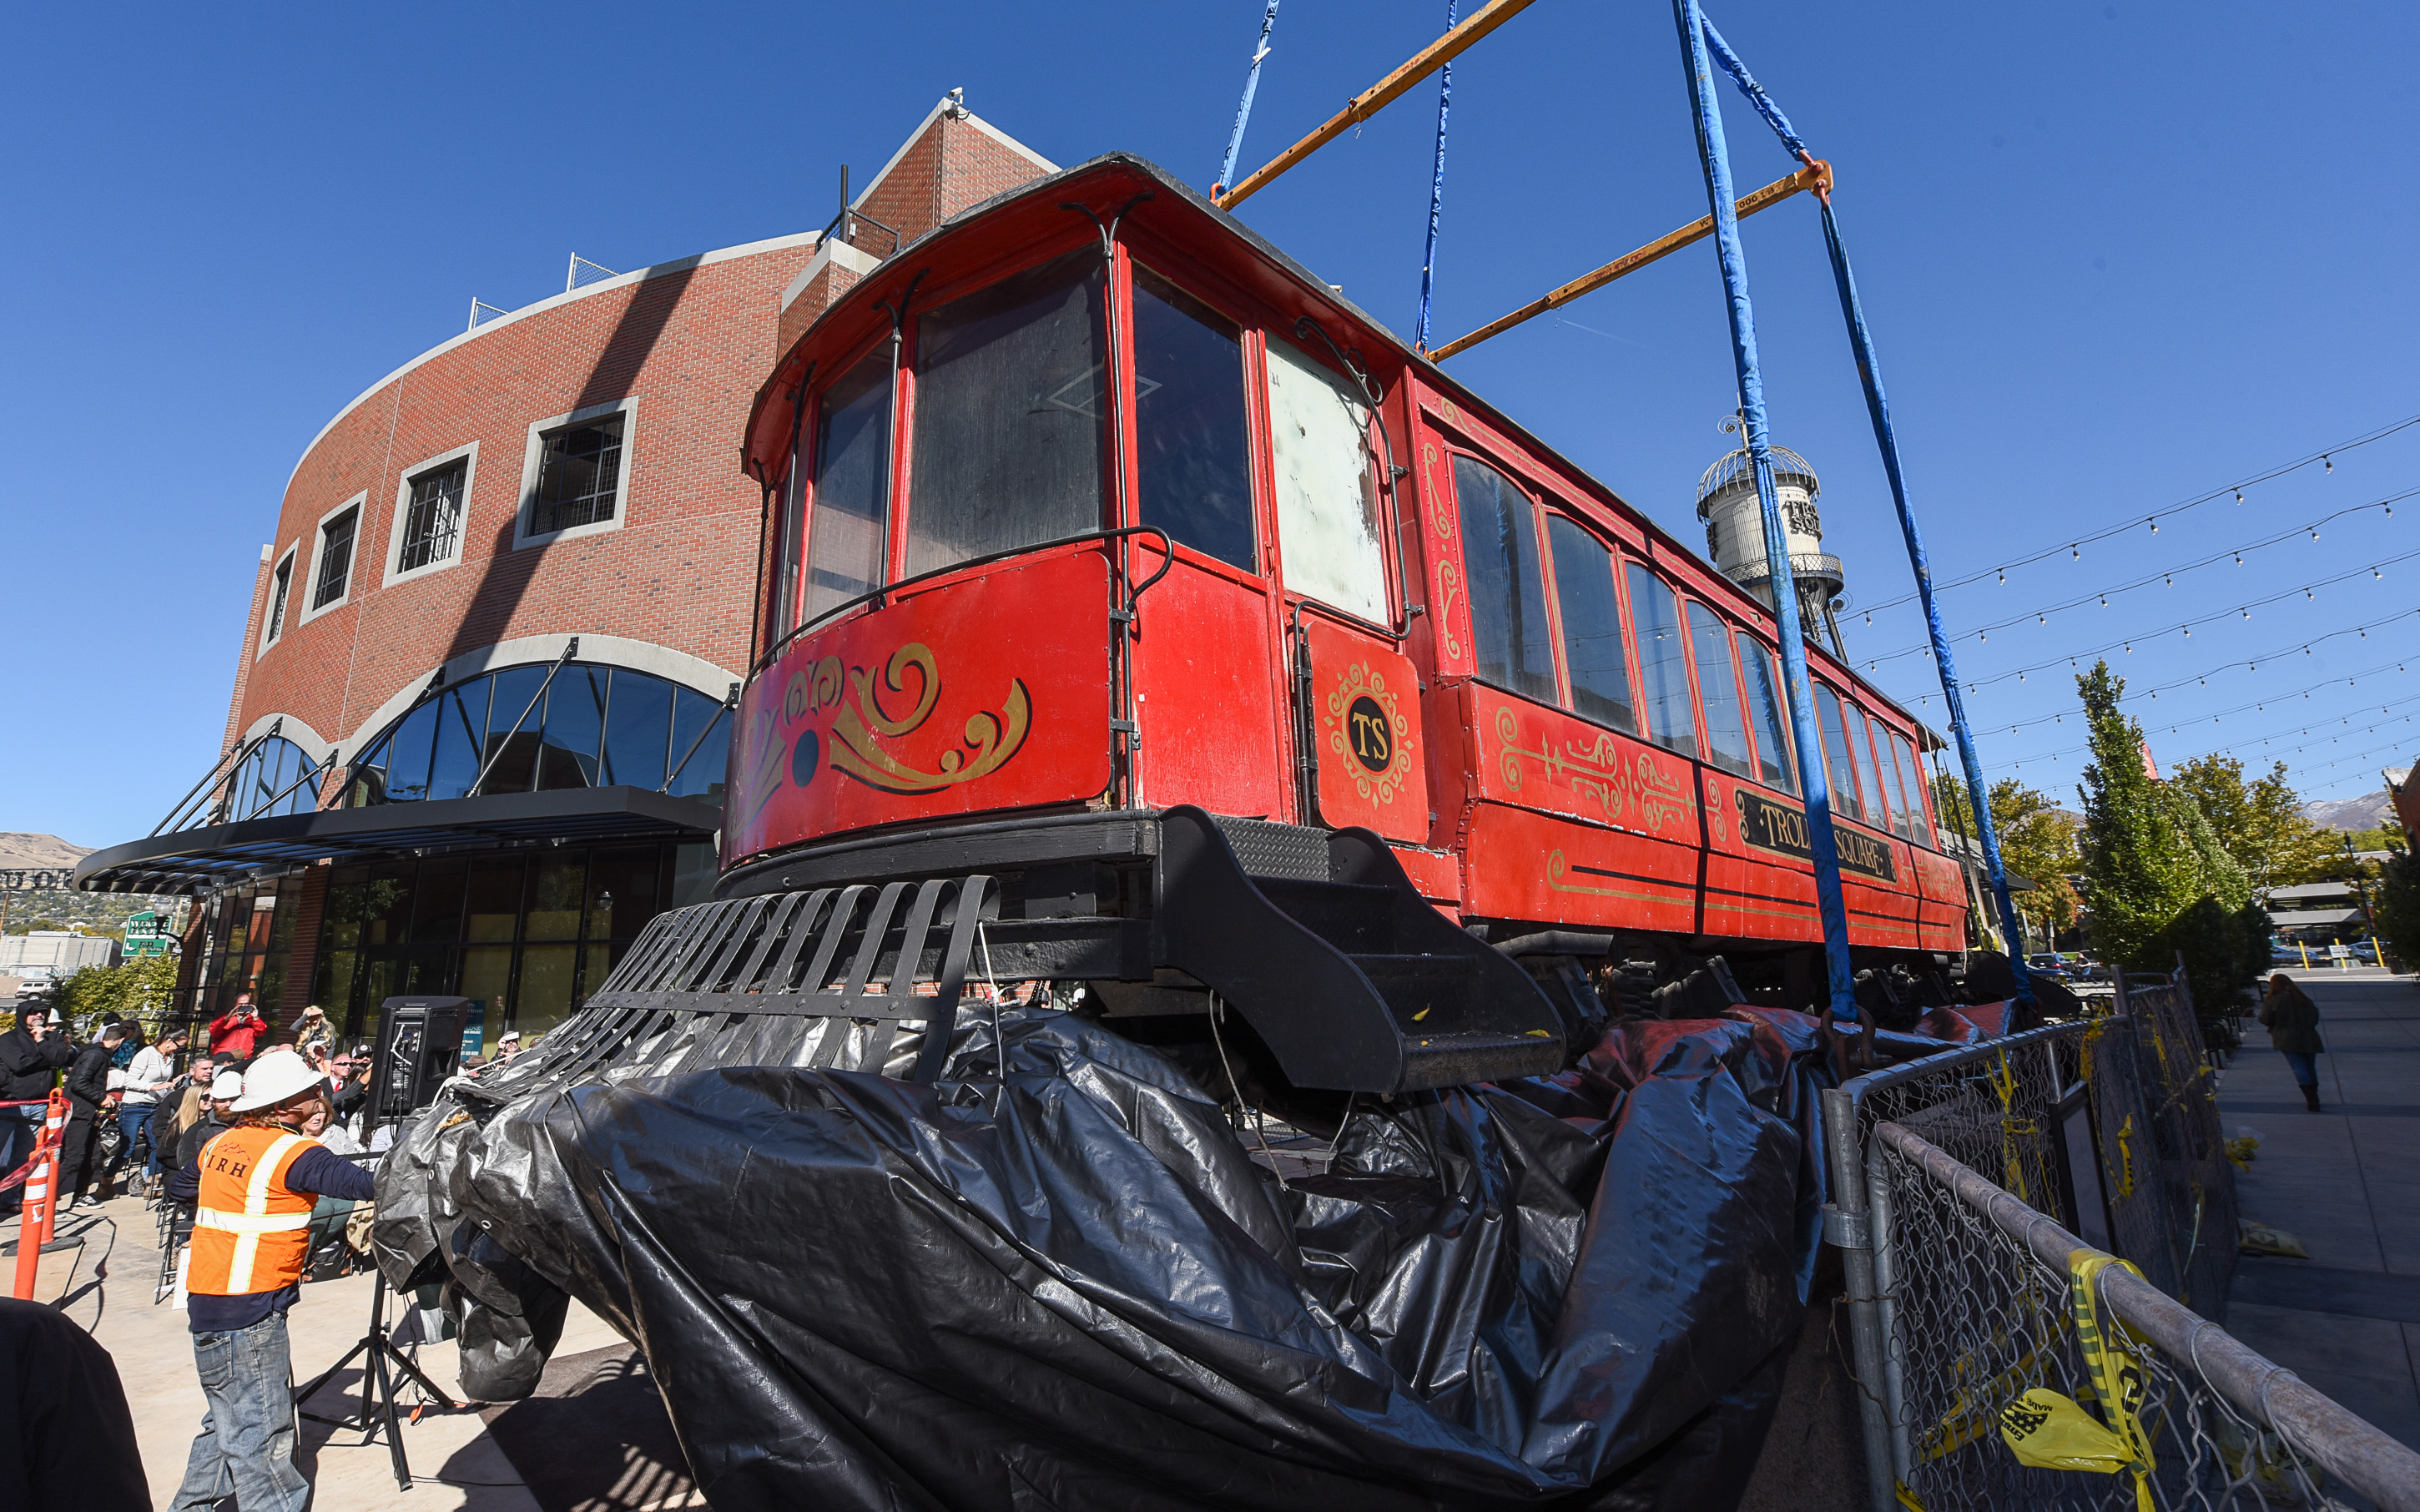 Back on track — historic streetcar returns to Salt Lake City's Trolley Square